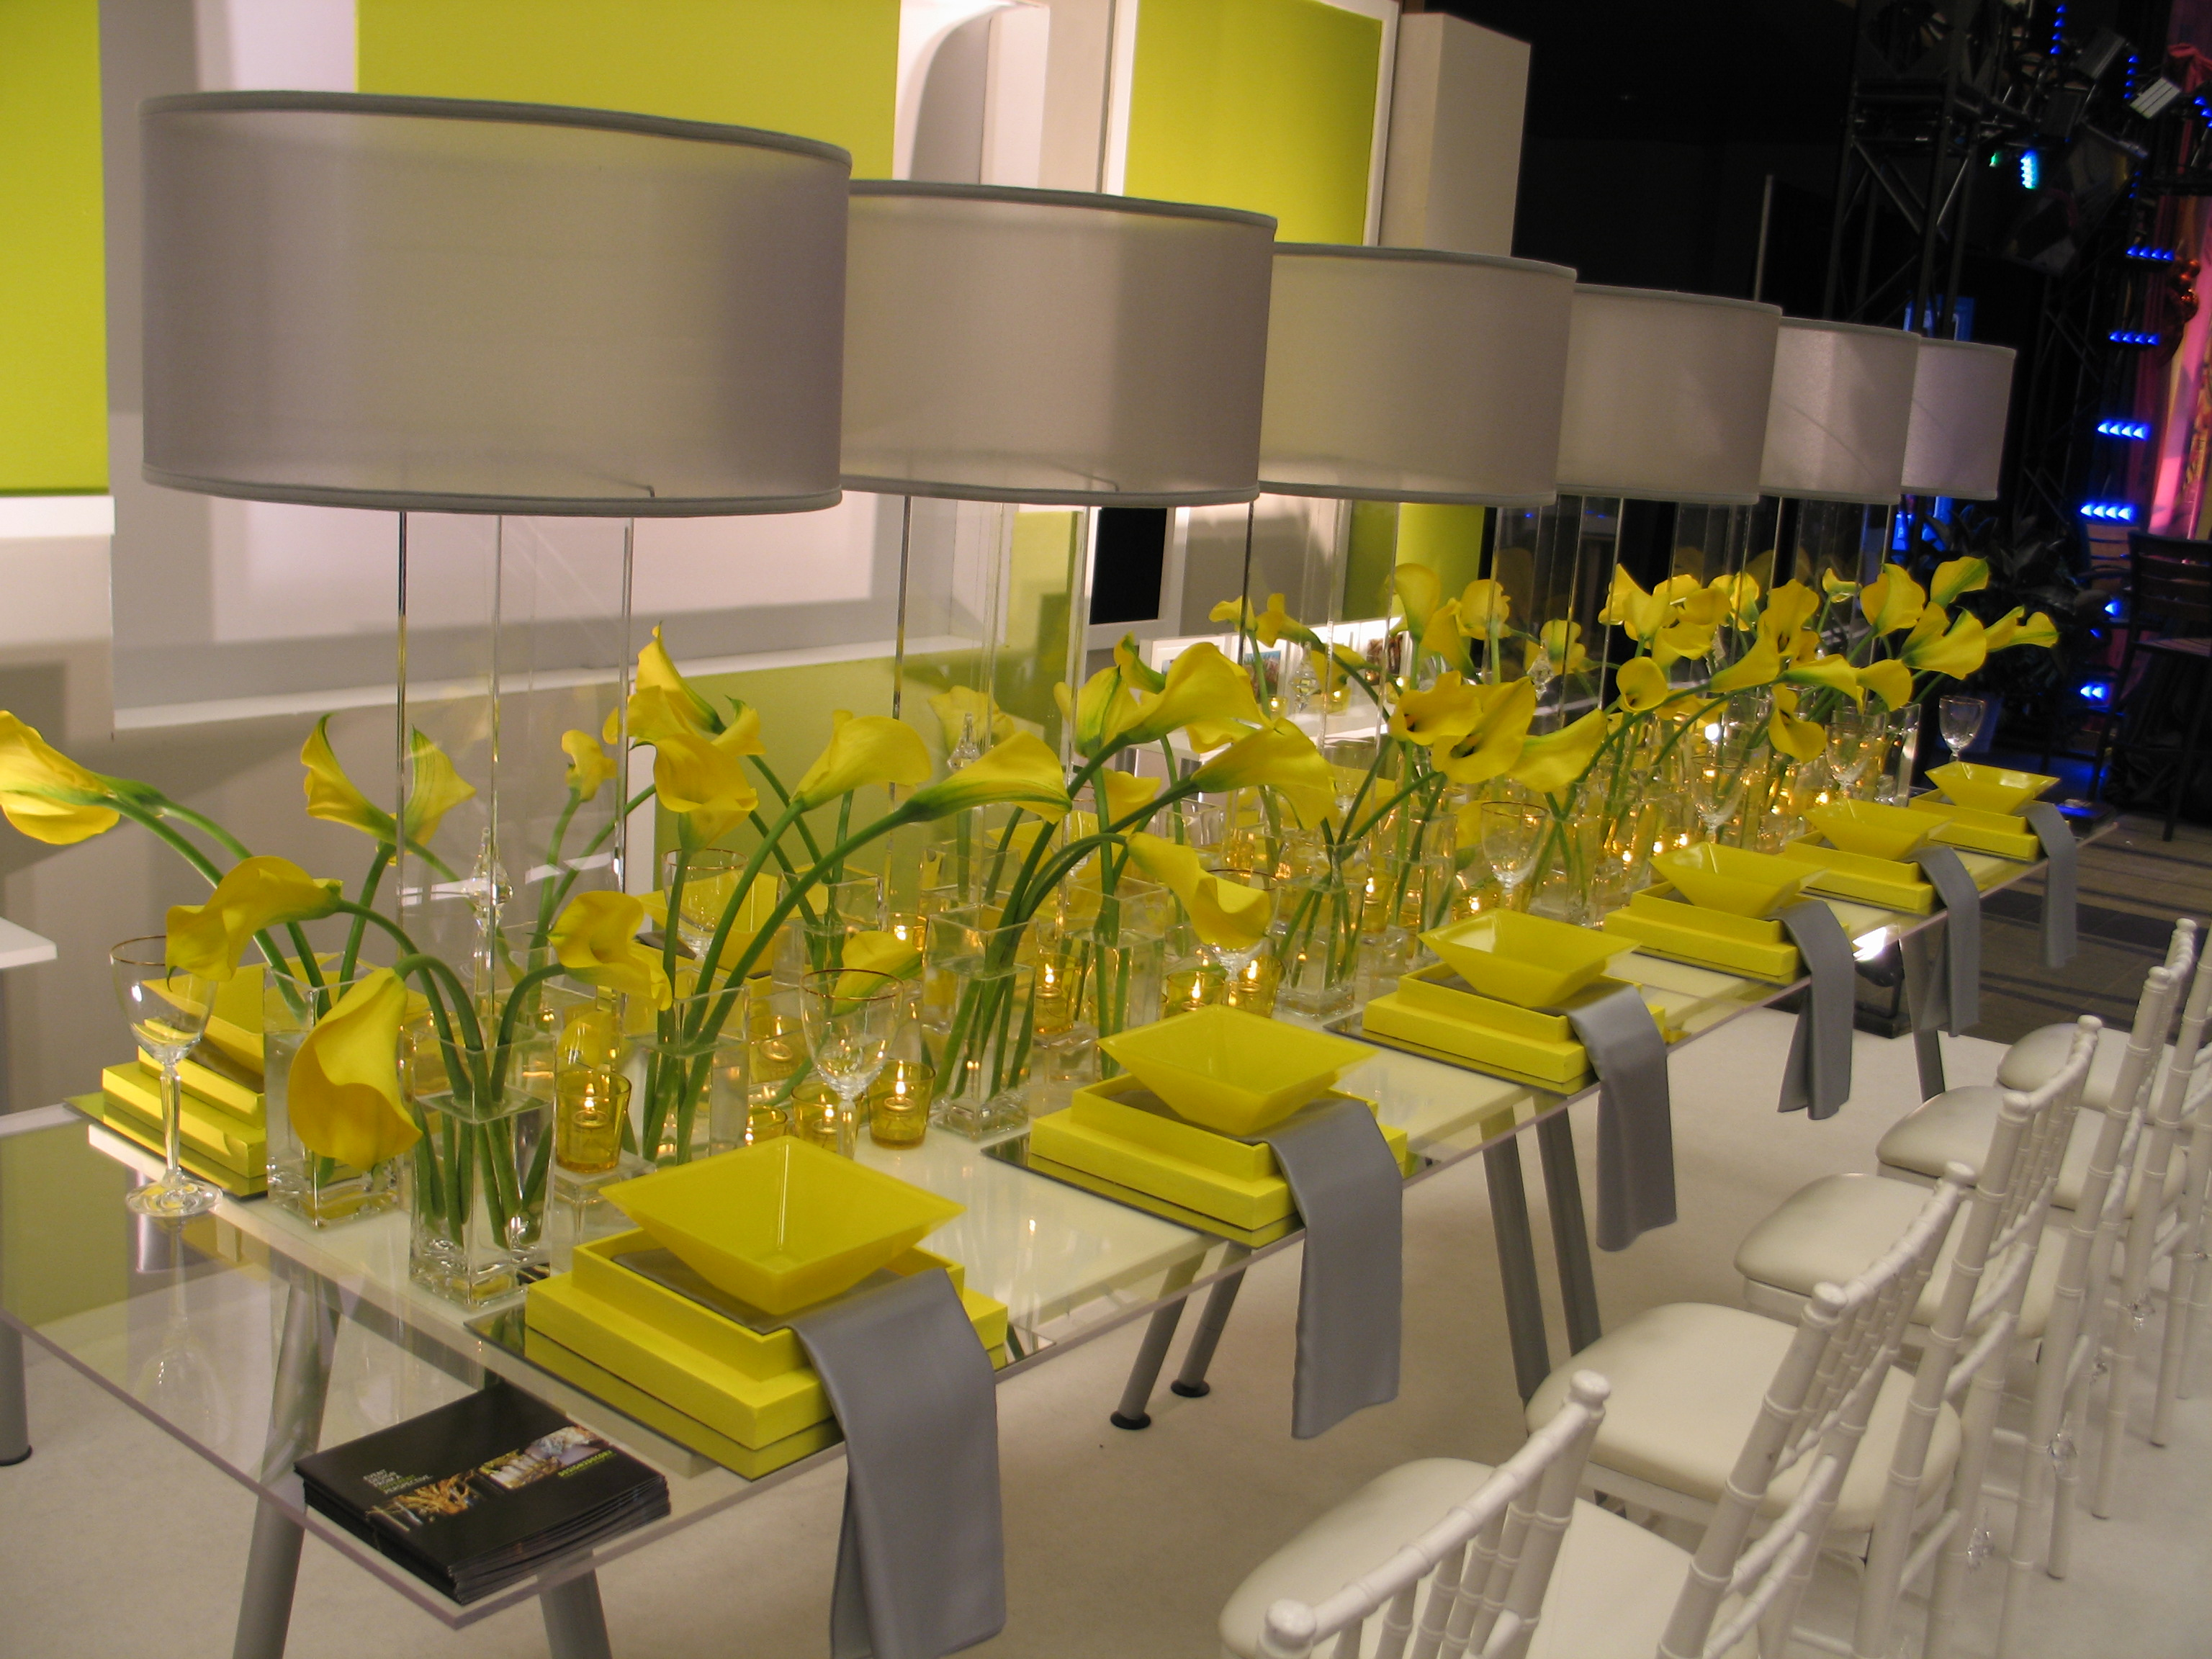 are some examples of yellow and grey wedding which i like very much